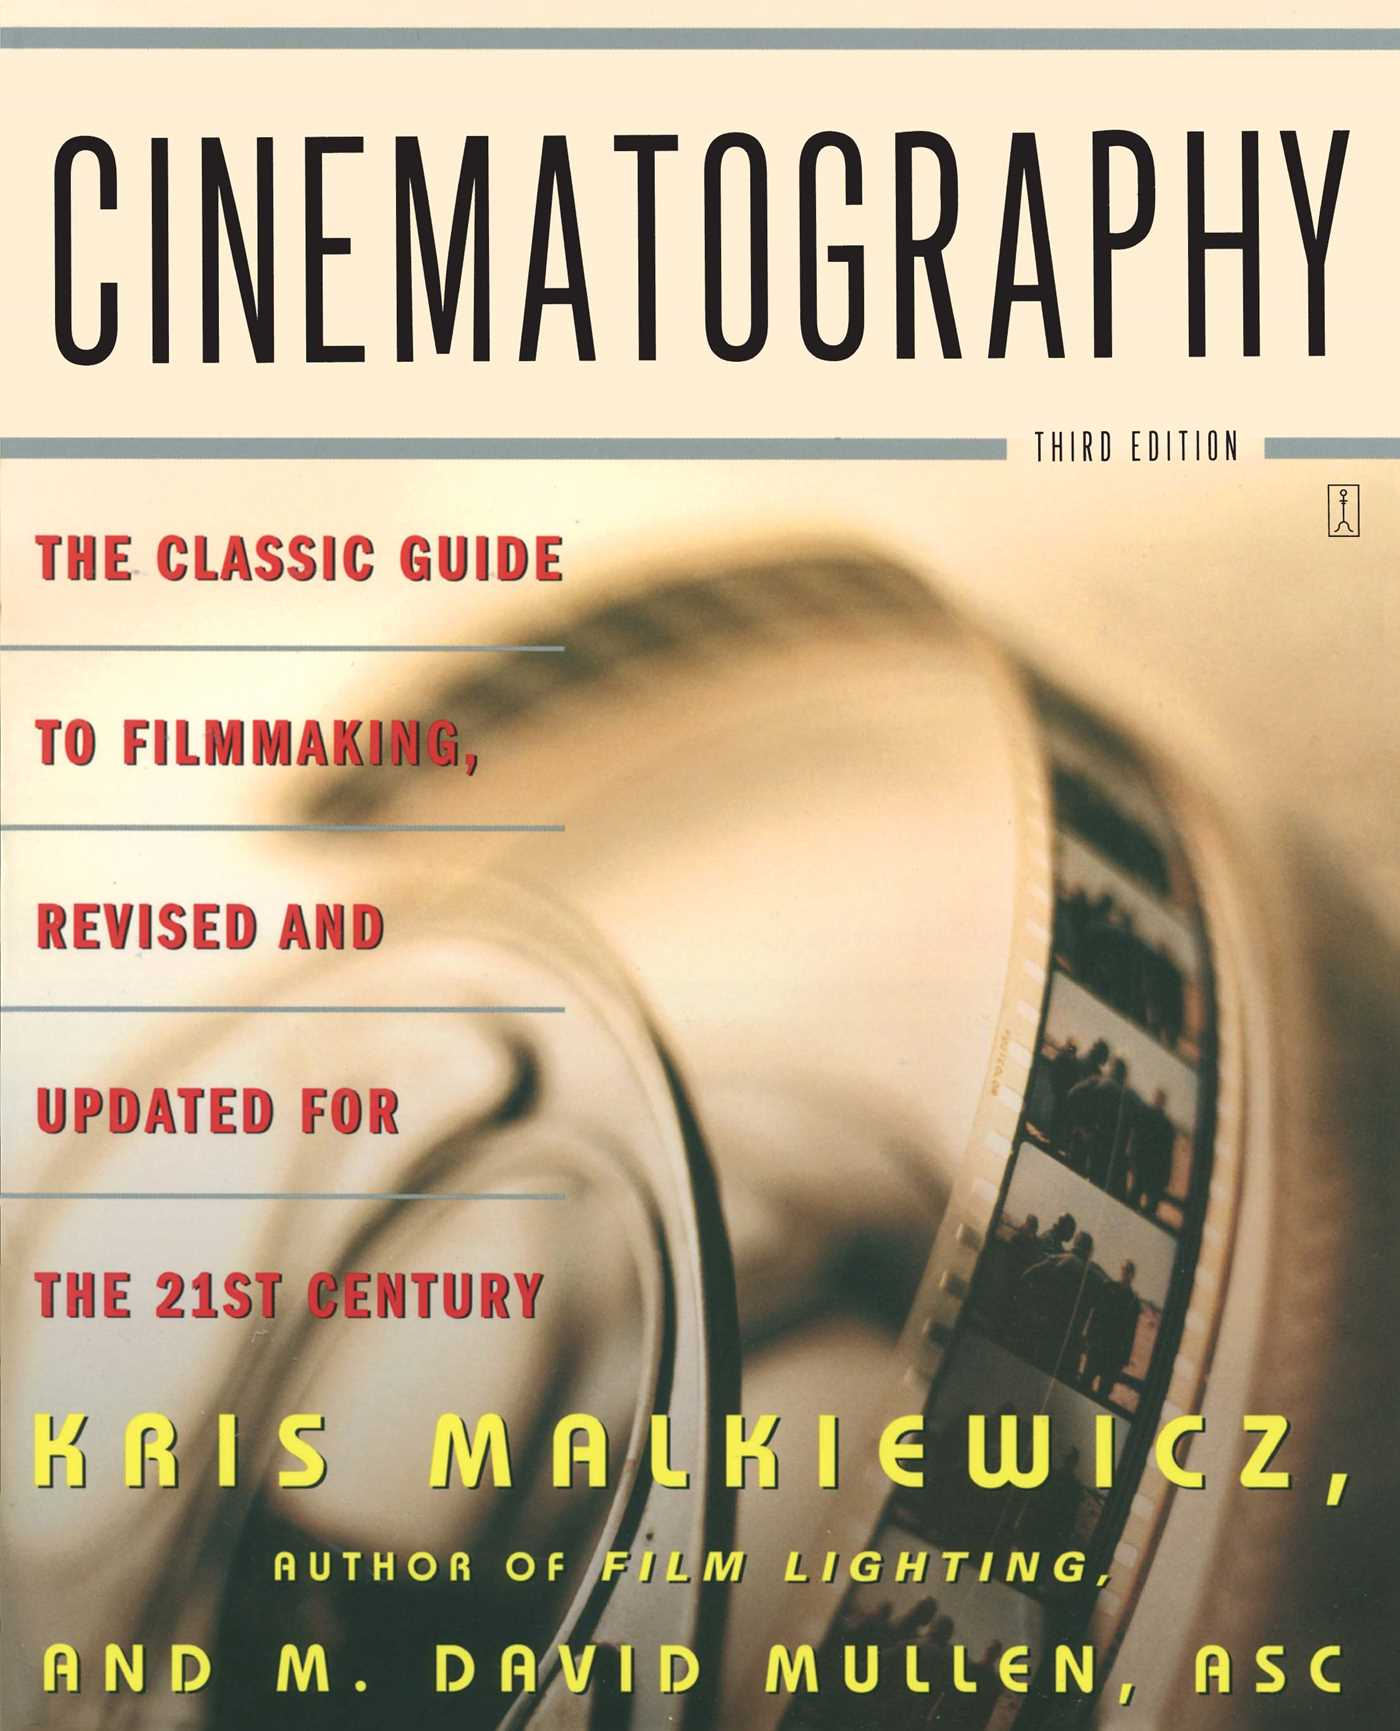 FILM LIGHTING MALKIEWICZ PDF DOWNLOAD